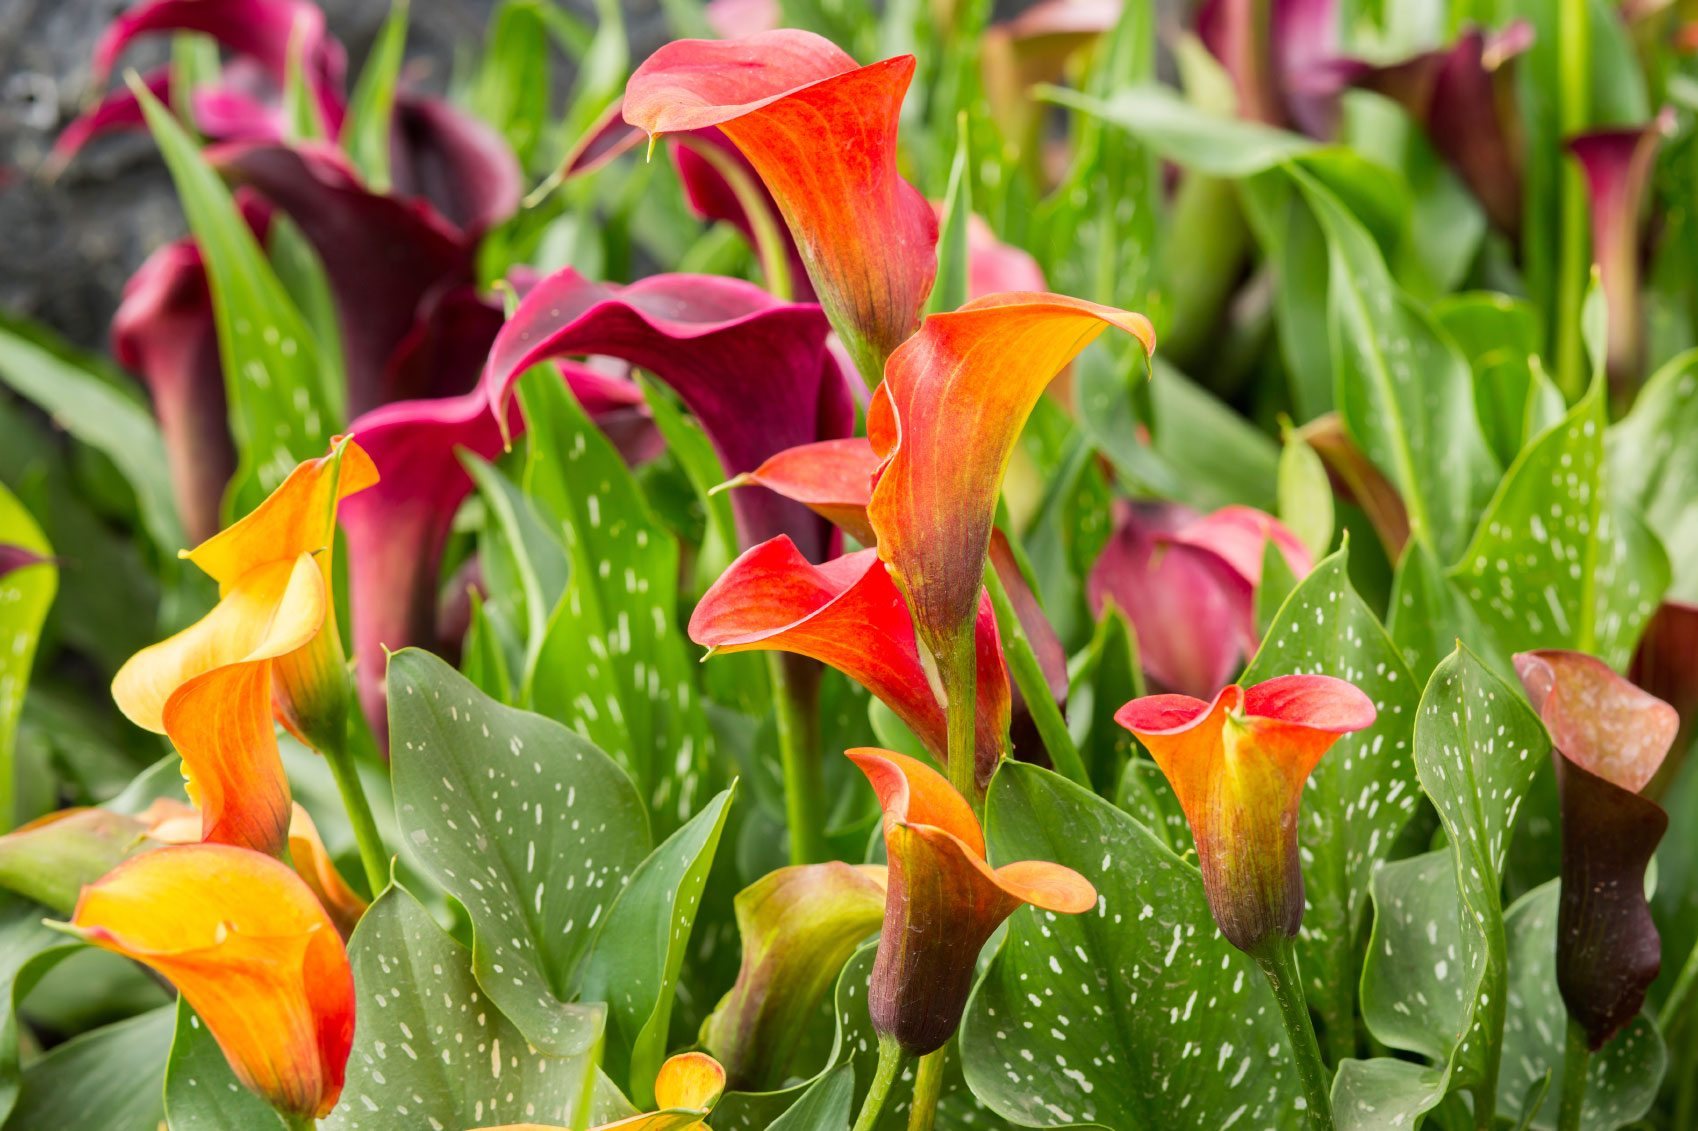 Calla Lily Division: When And How To Divide A Calla Lily Plant